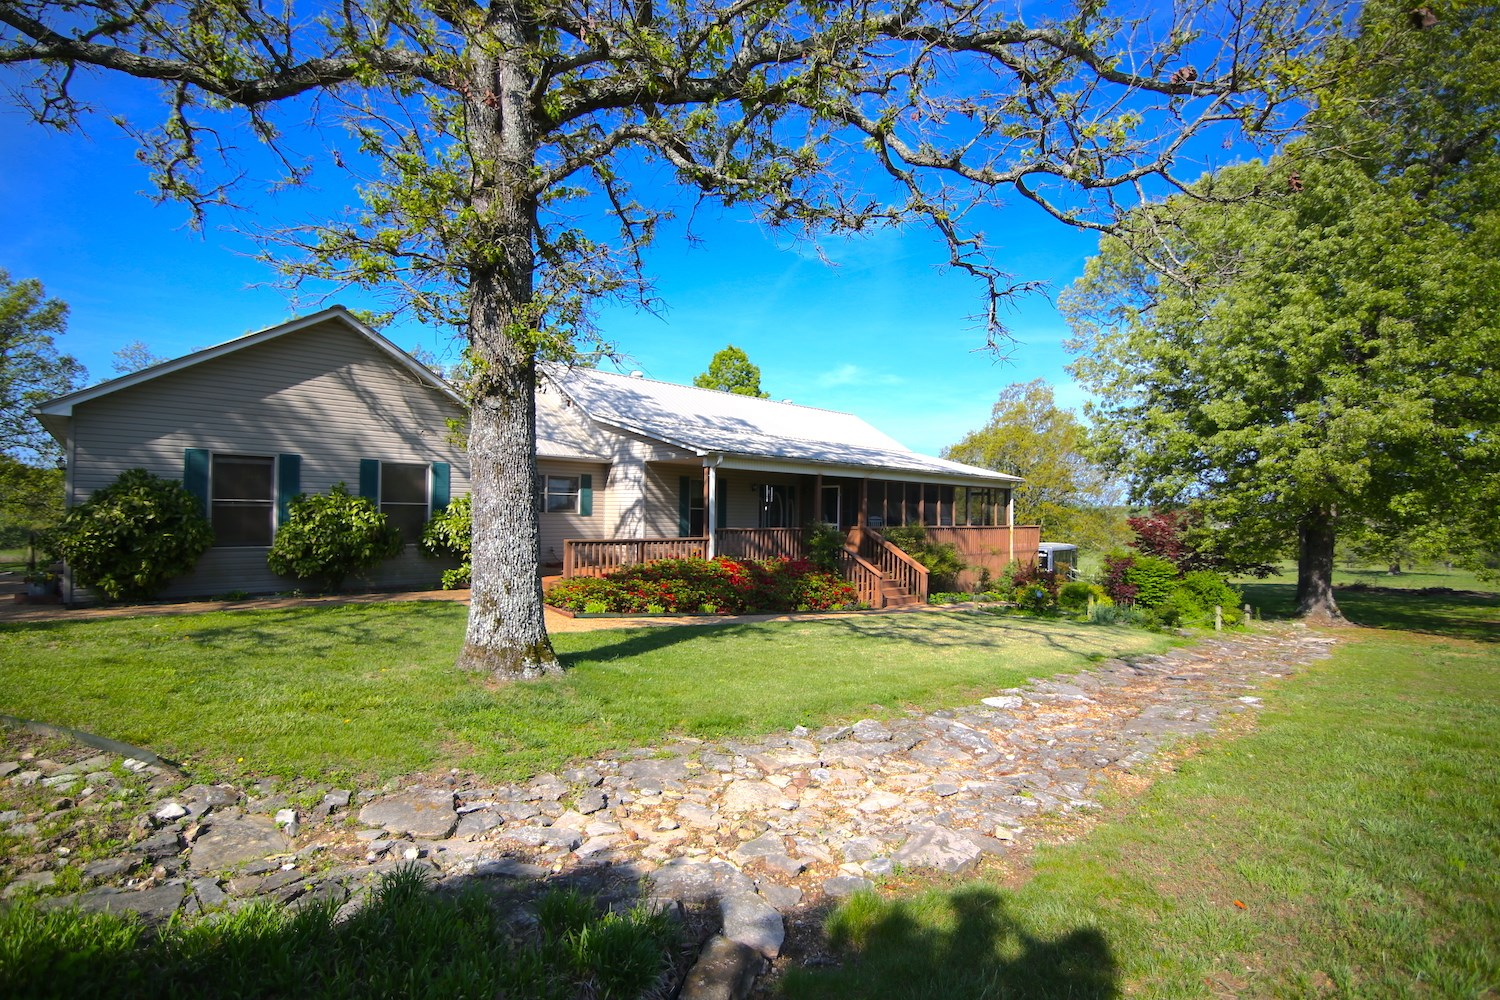 Arkansas Country Home, Shop & Acreage for Sale